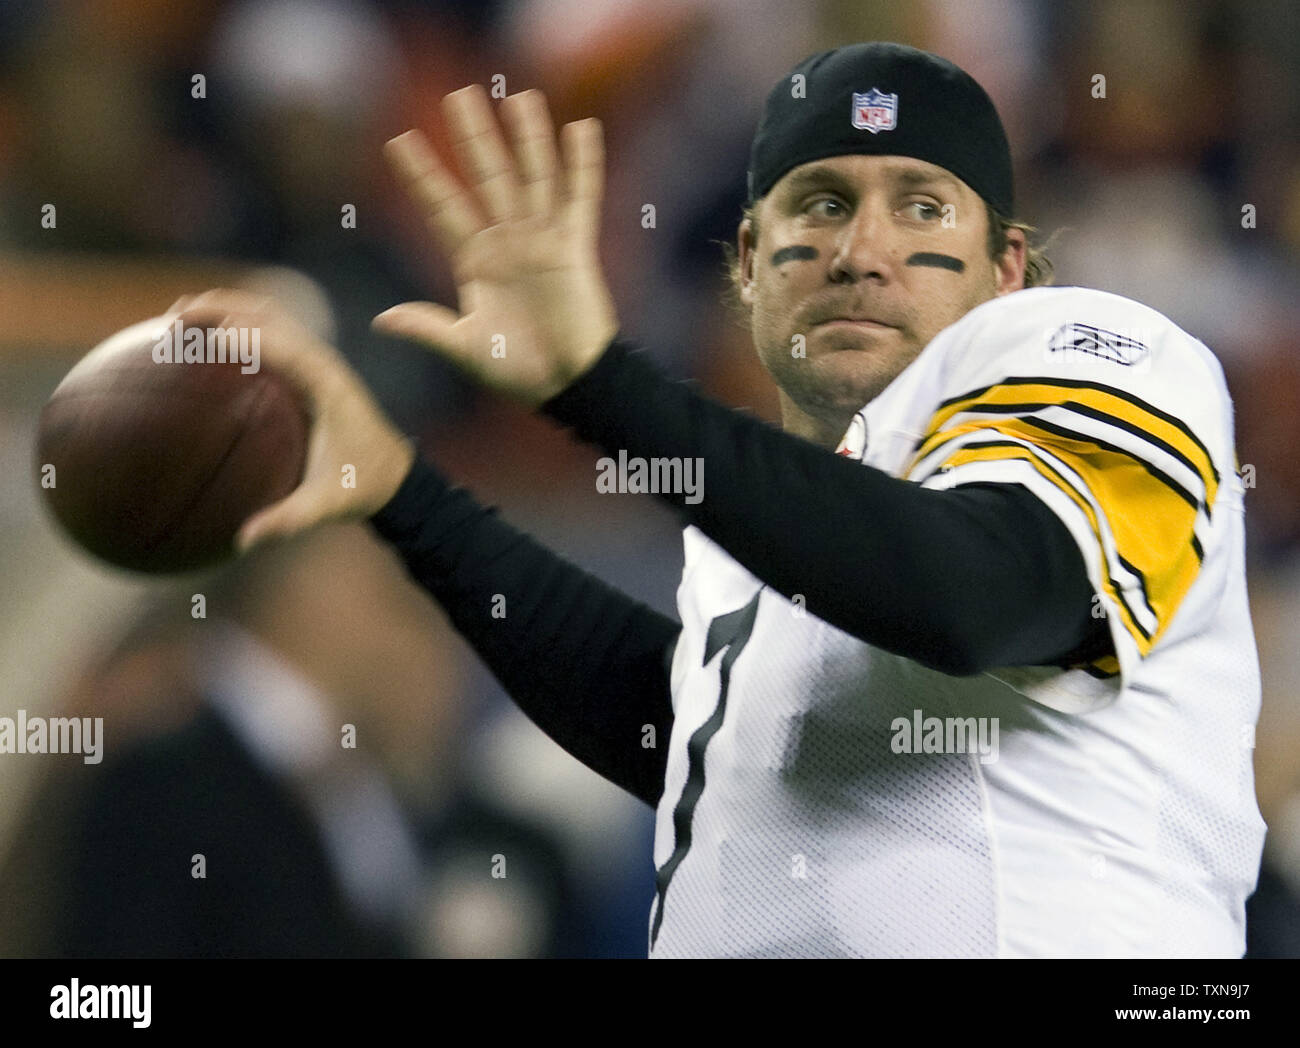 Pittsburgh Steelers quarterback Ben Roethlisberger warms up at Invesco Field at Mile High in Denver on November 9, 2009.       UPI/Gary C. Caskey... - Stock Image